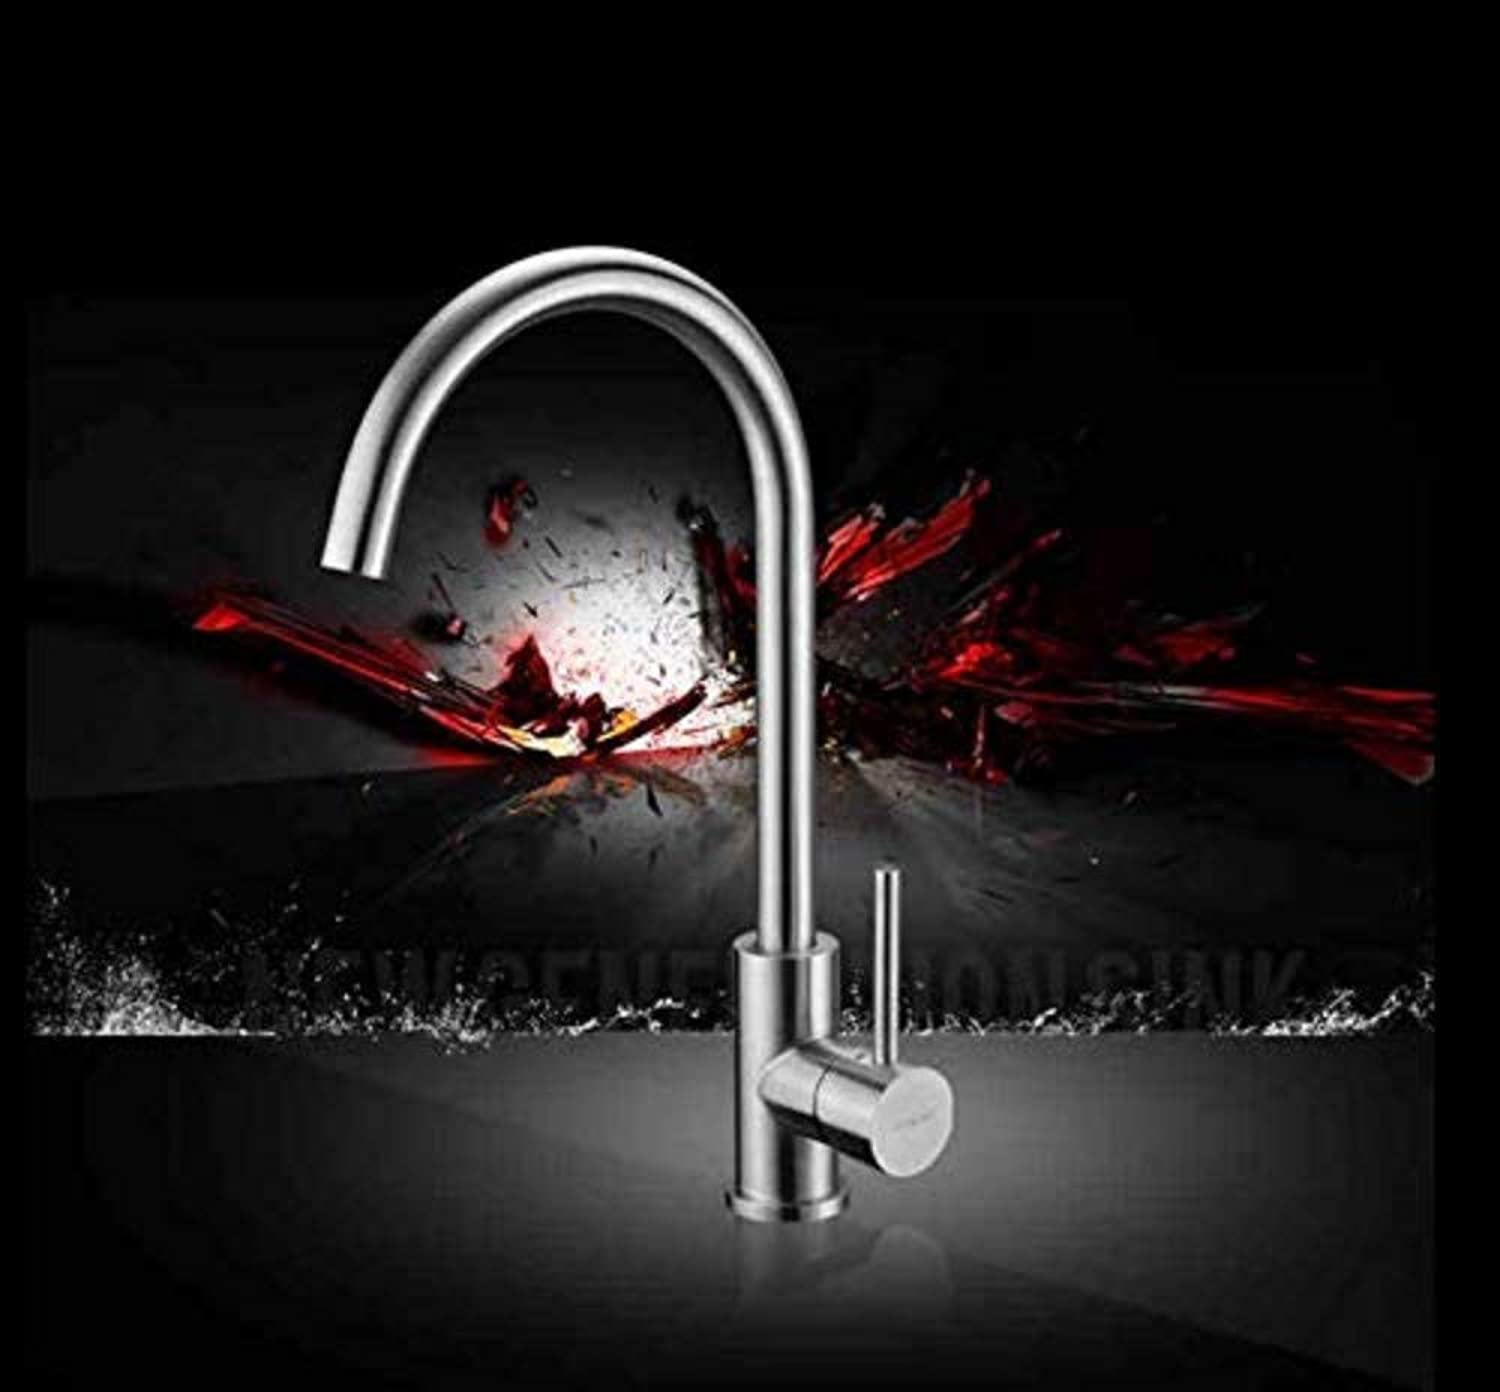 360° redating Faucet Retro Faucetstainless Steel Faucet Sink with Faucet Faucet